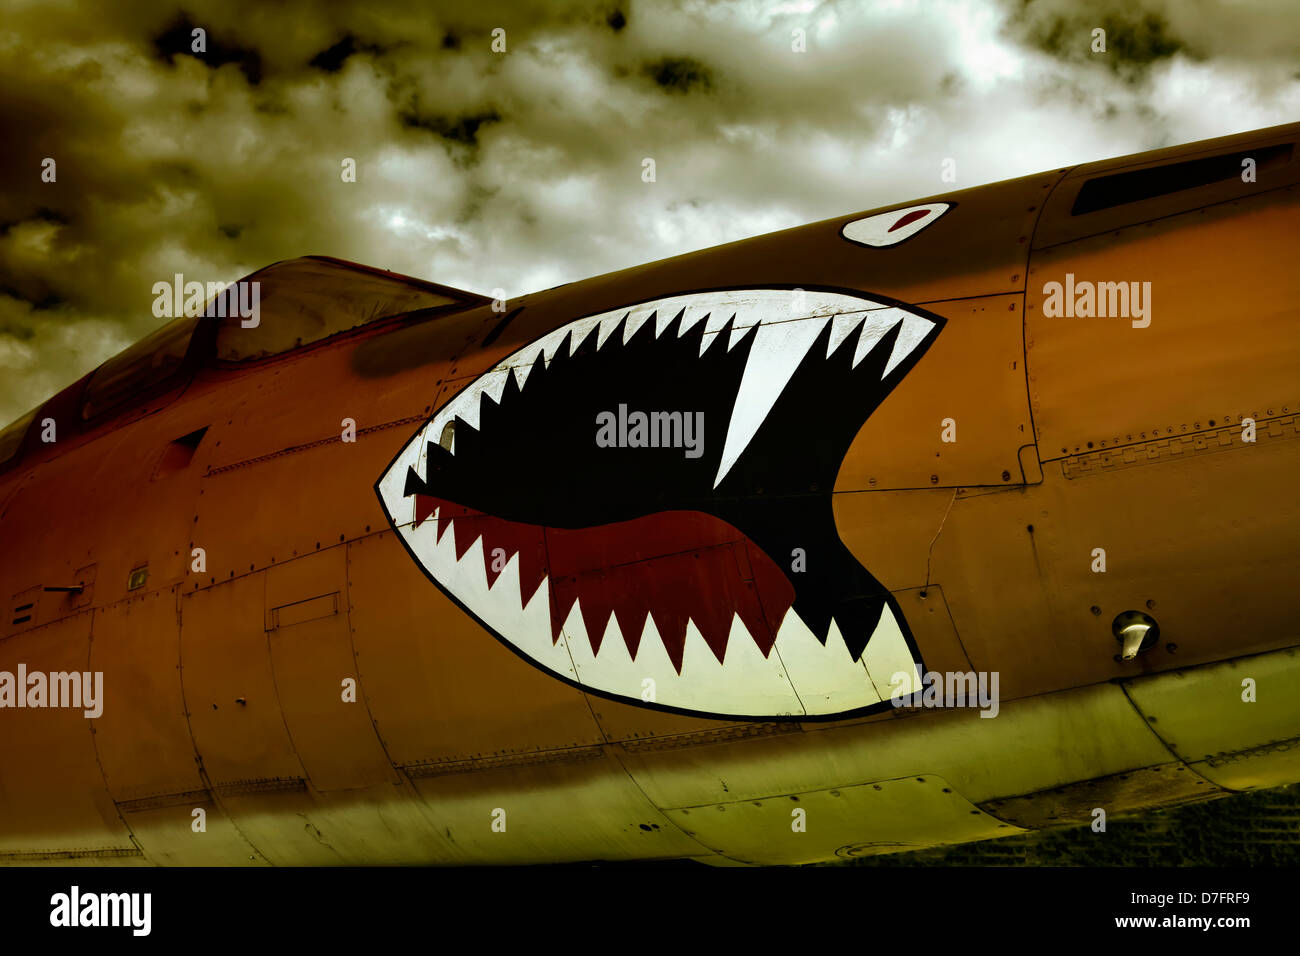 Detail of a Republic F-105 Thunderchief or Thud, belgian airforce, Aircraft Collection Hermeskeil, Germany, Europe - Stock Image